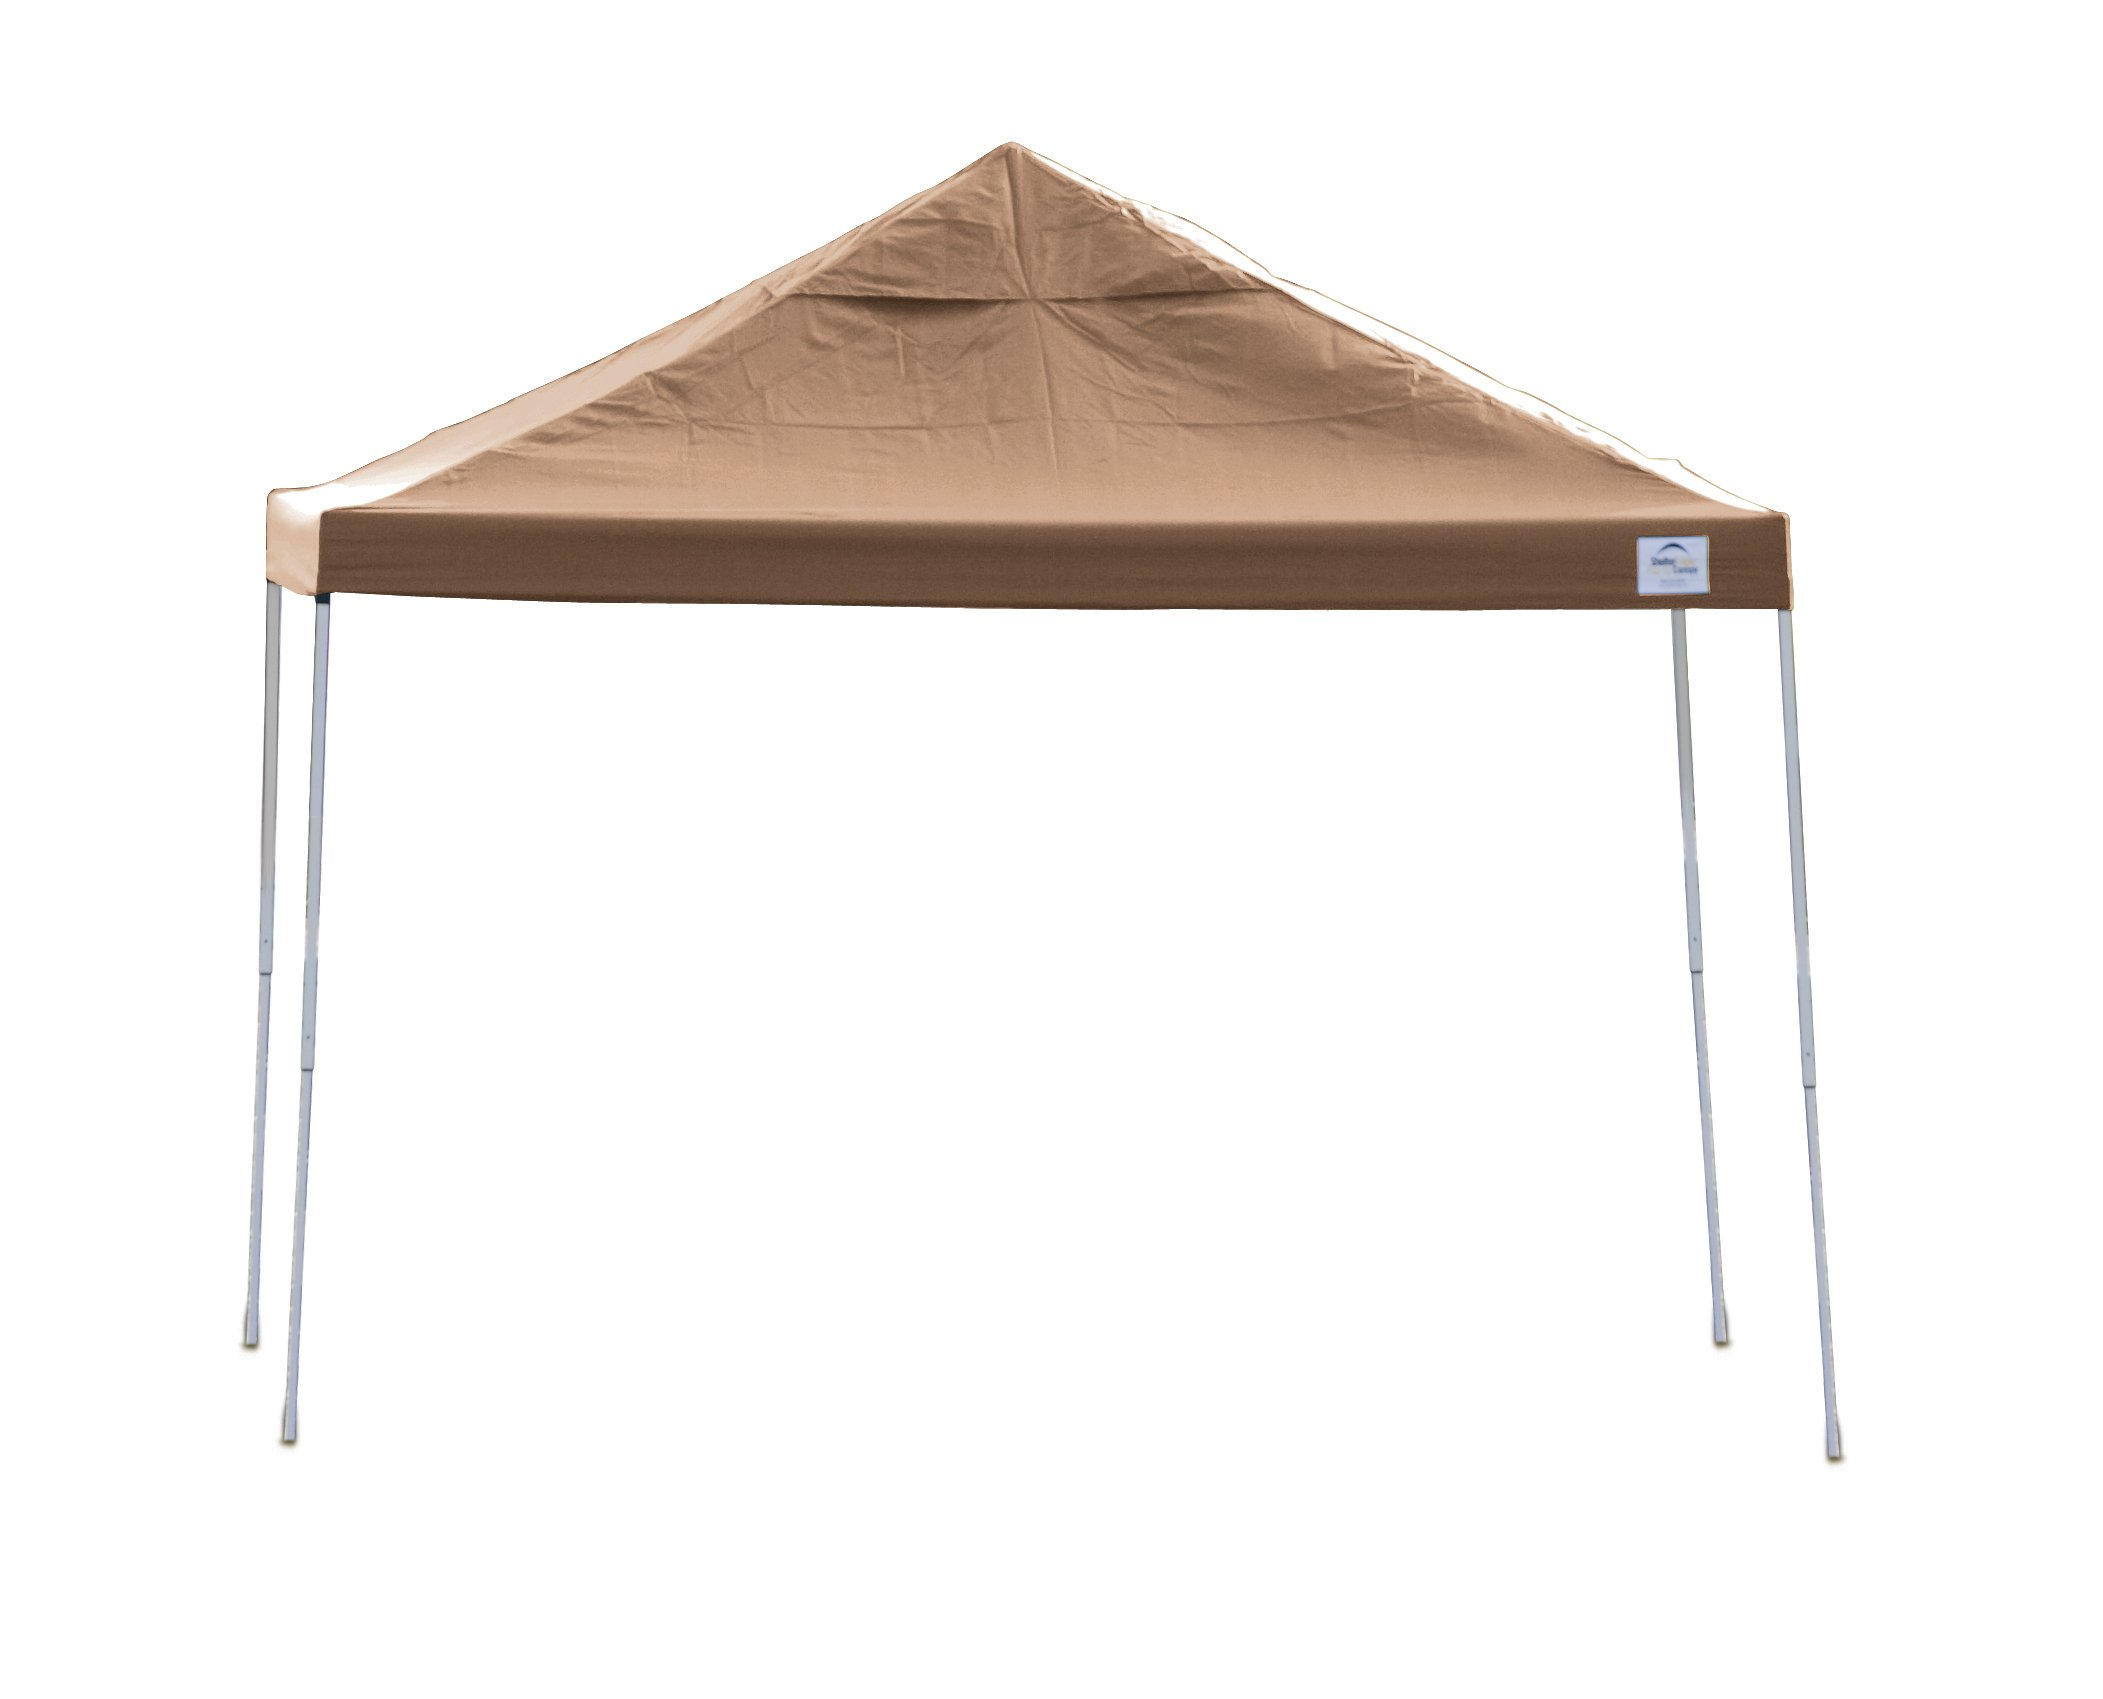 12x12 Straight Leg Pop-up Canopy, Desert Bronze Cover, Black Roller Bag